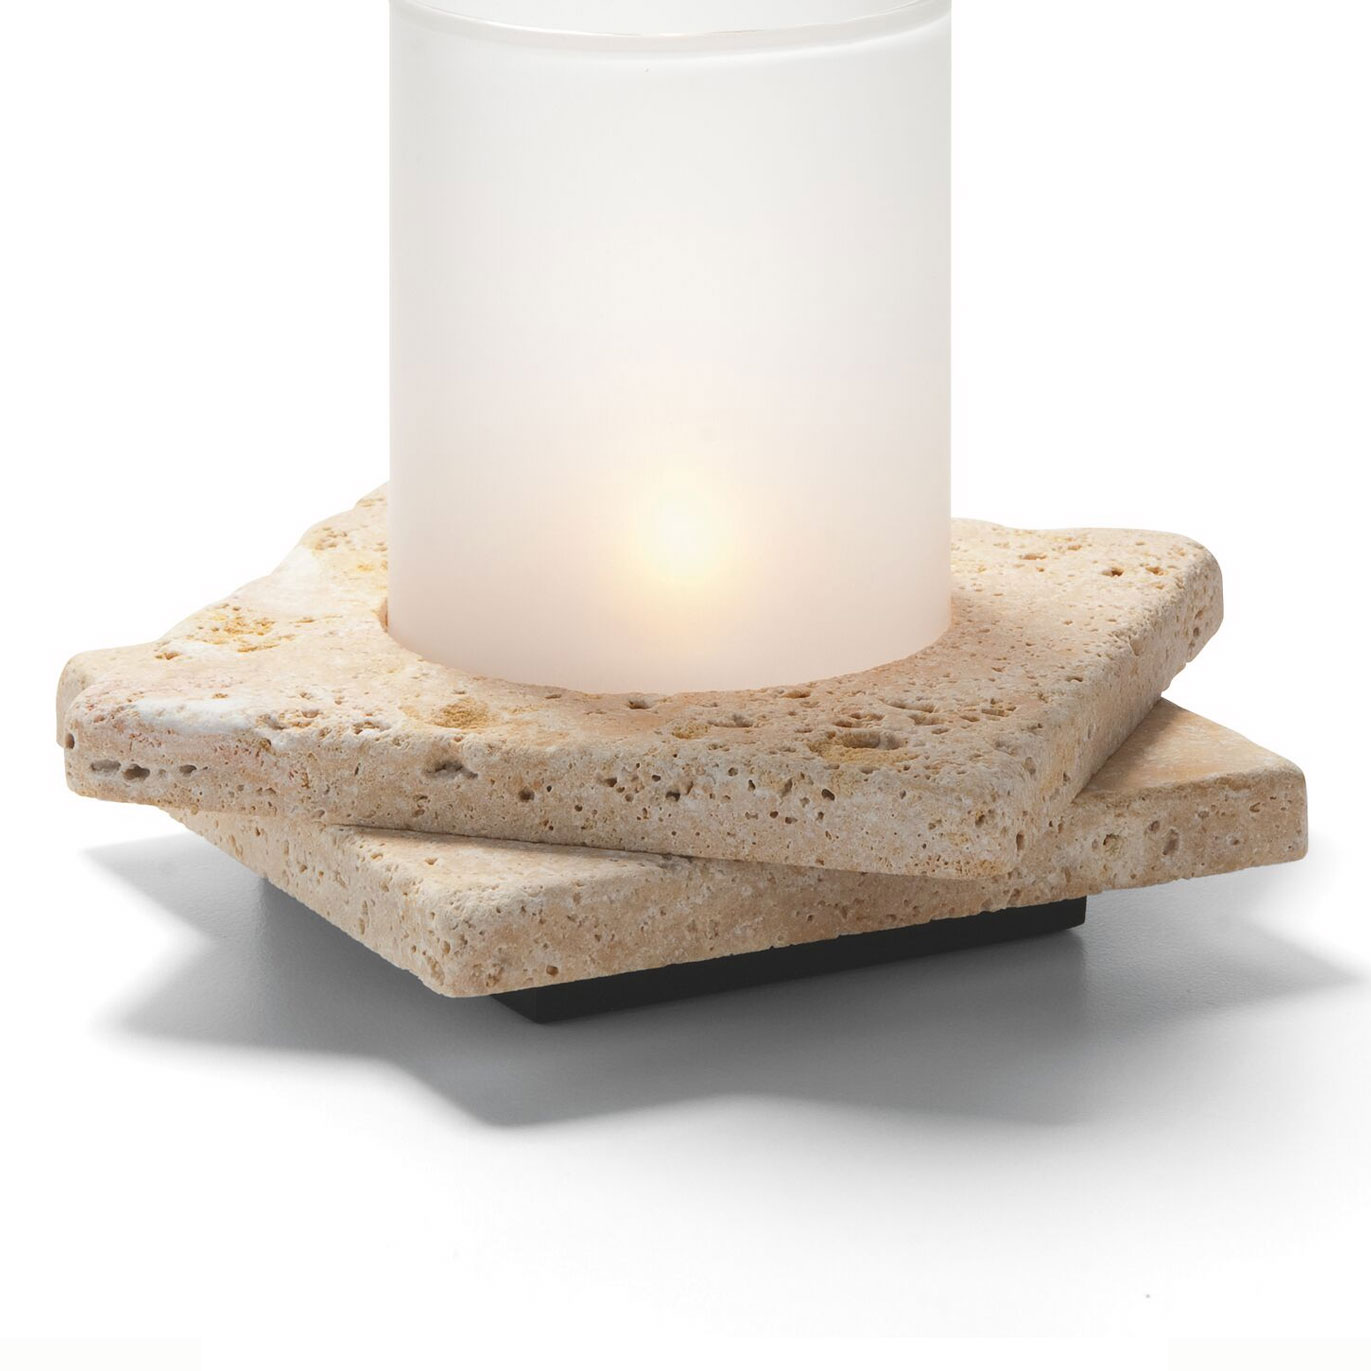 "Hollowick ZEN-GTR2 Double Zen Lamp Base for 78C & 78SC, 5.5x1.25"", Stone, Gold Travertine"